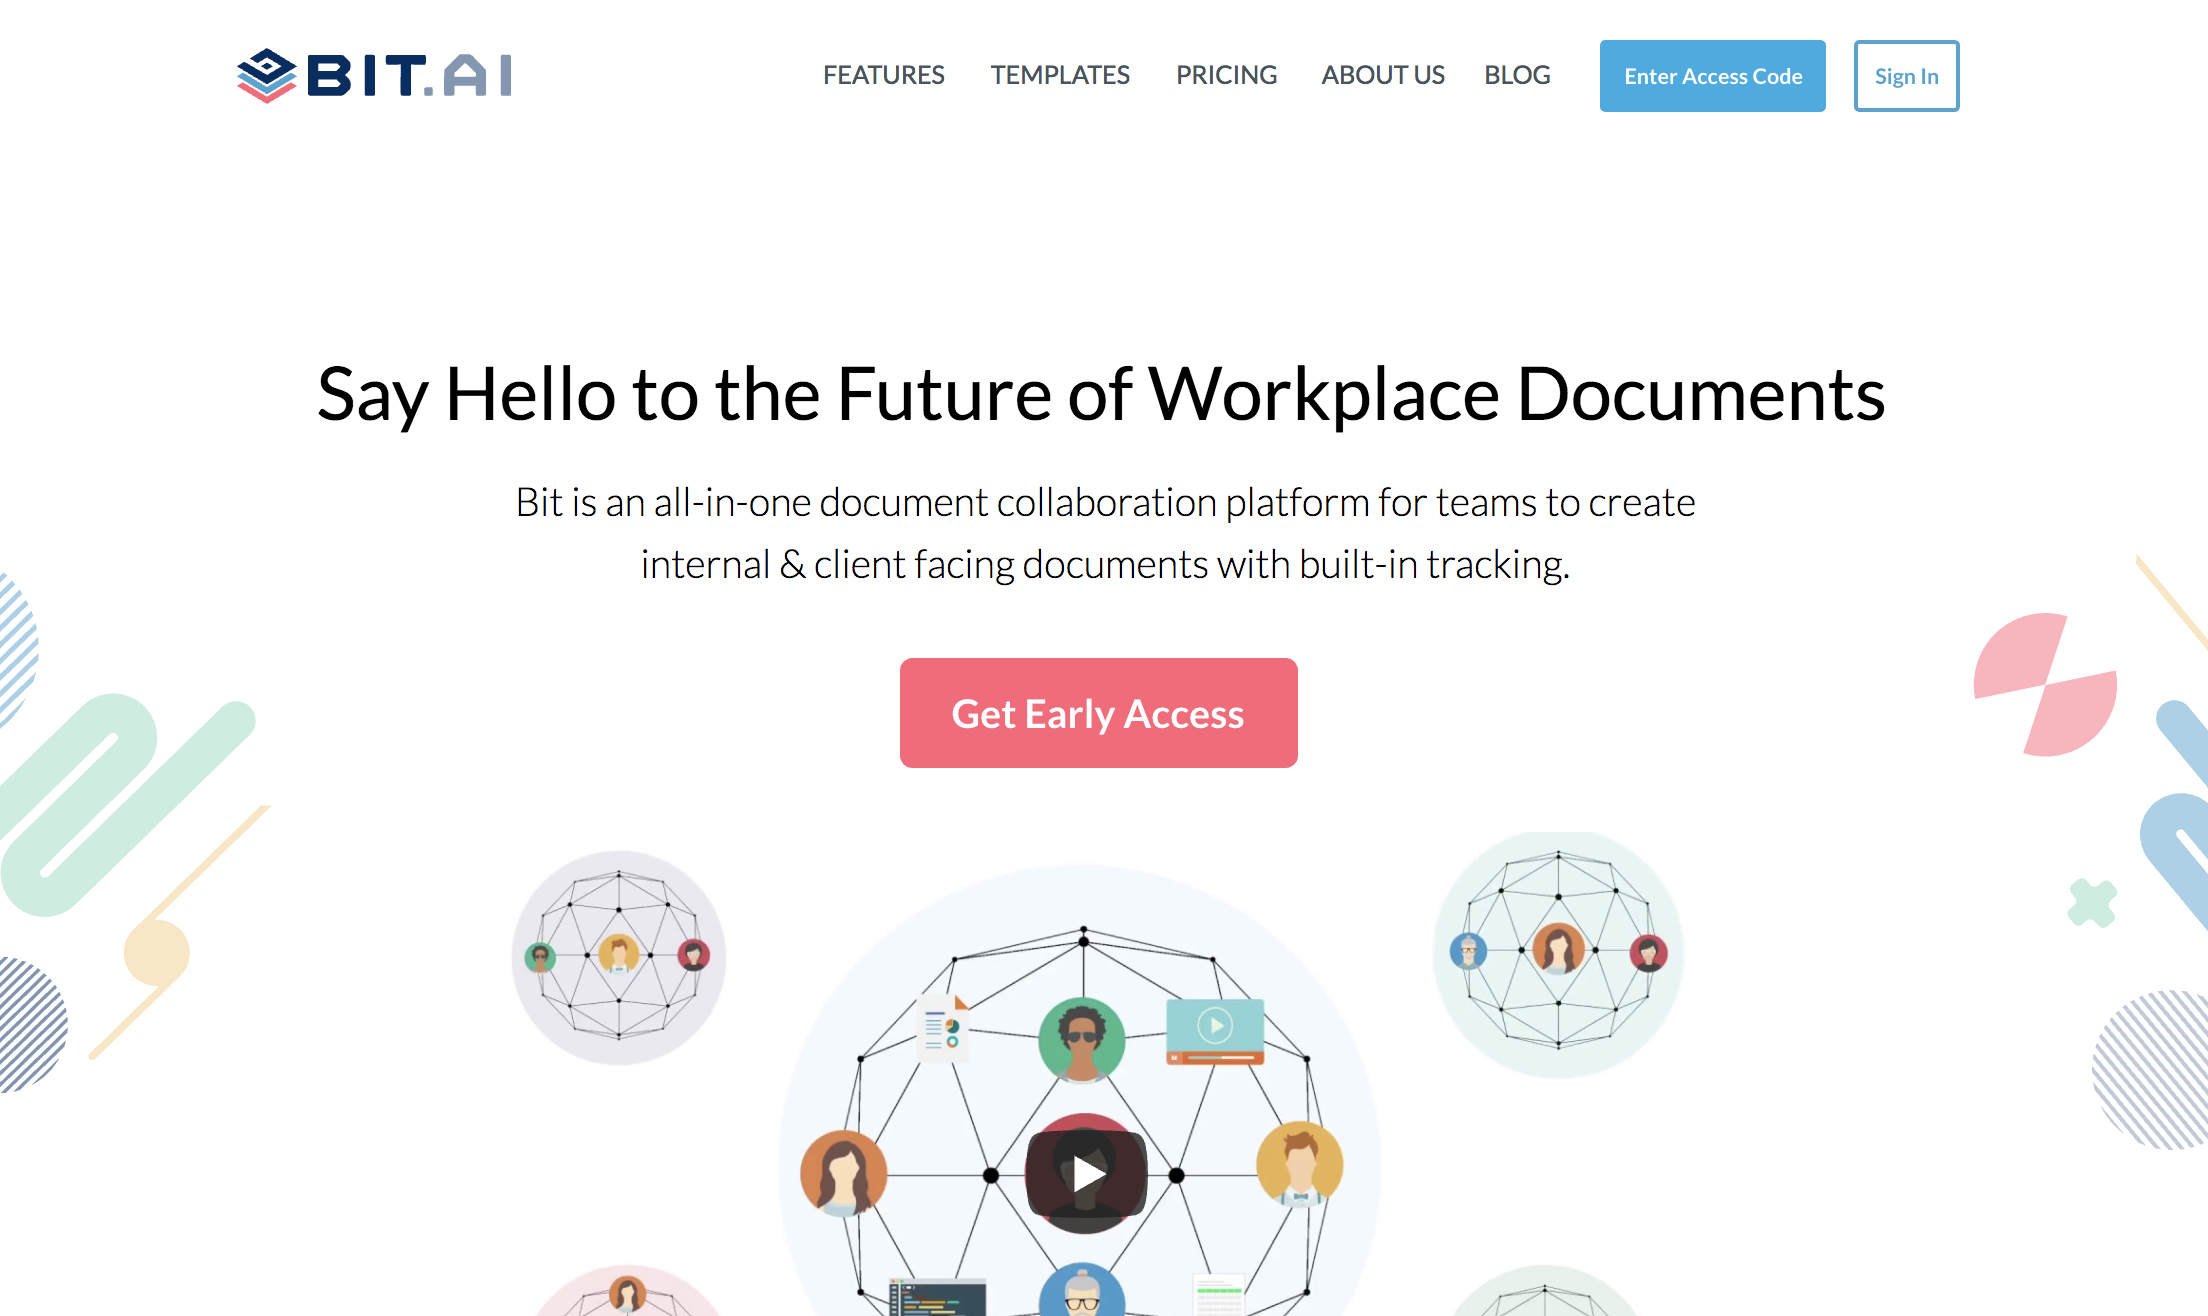 Bit.ai: Document management and collaboration tool